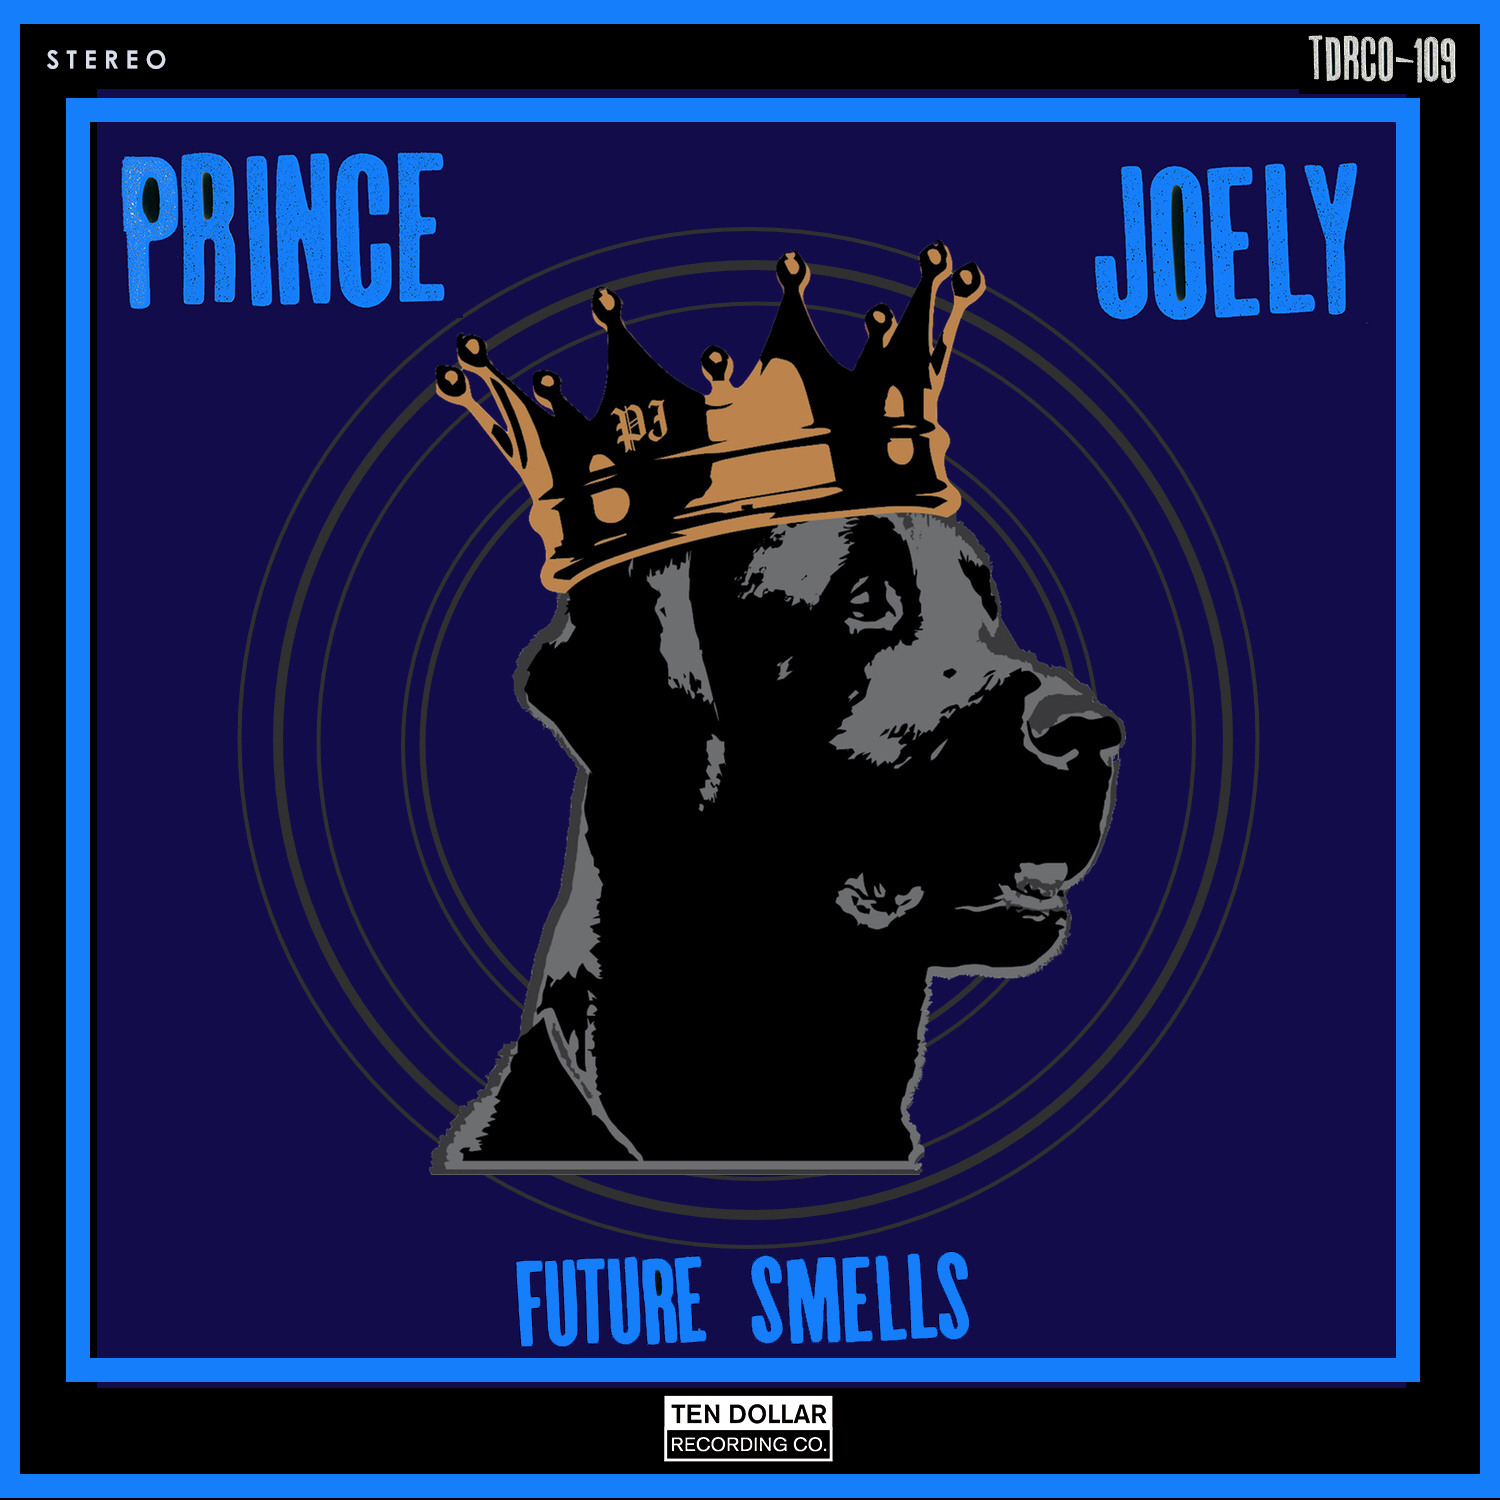 Prince Joely - Future Smells